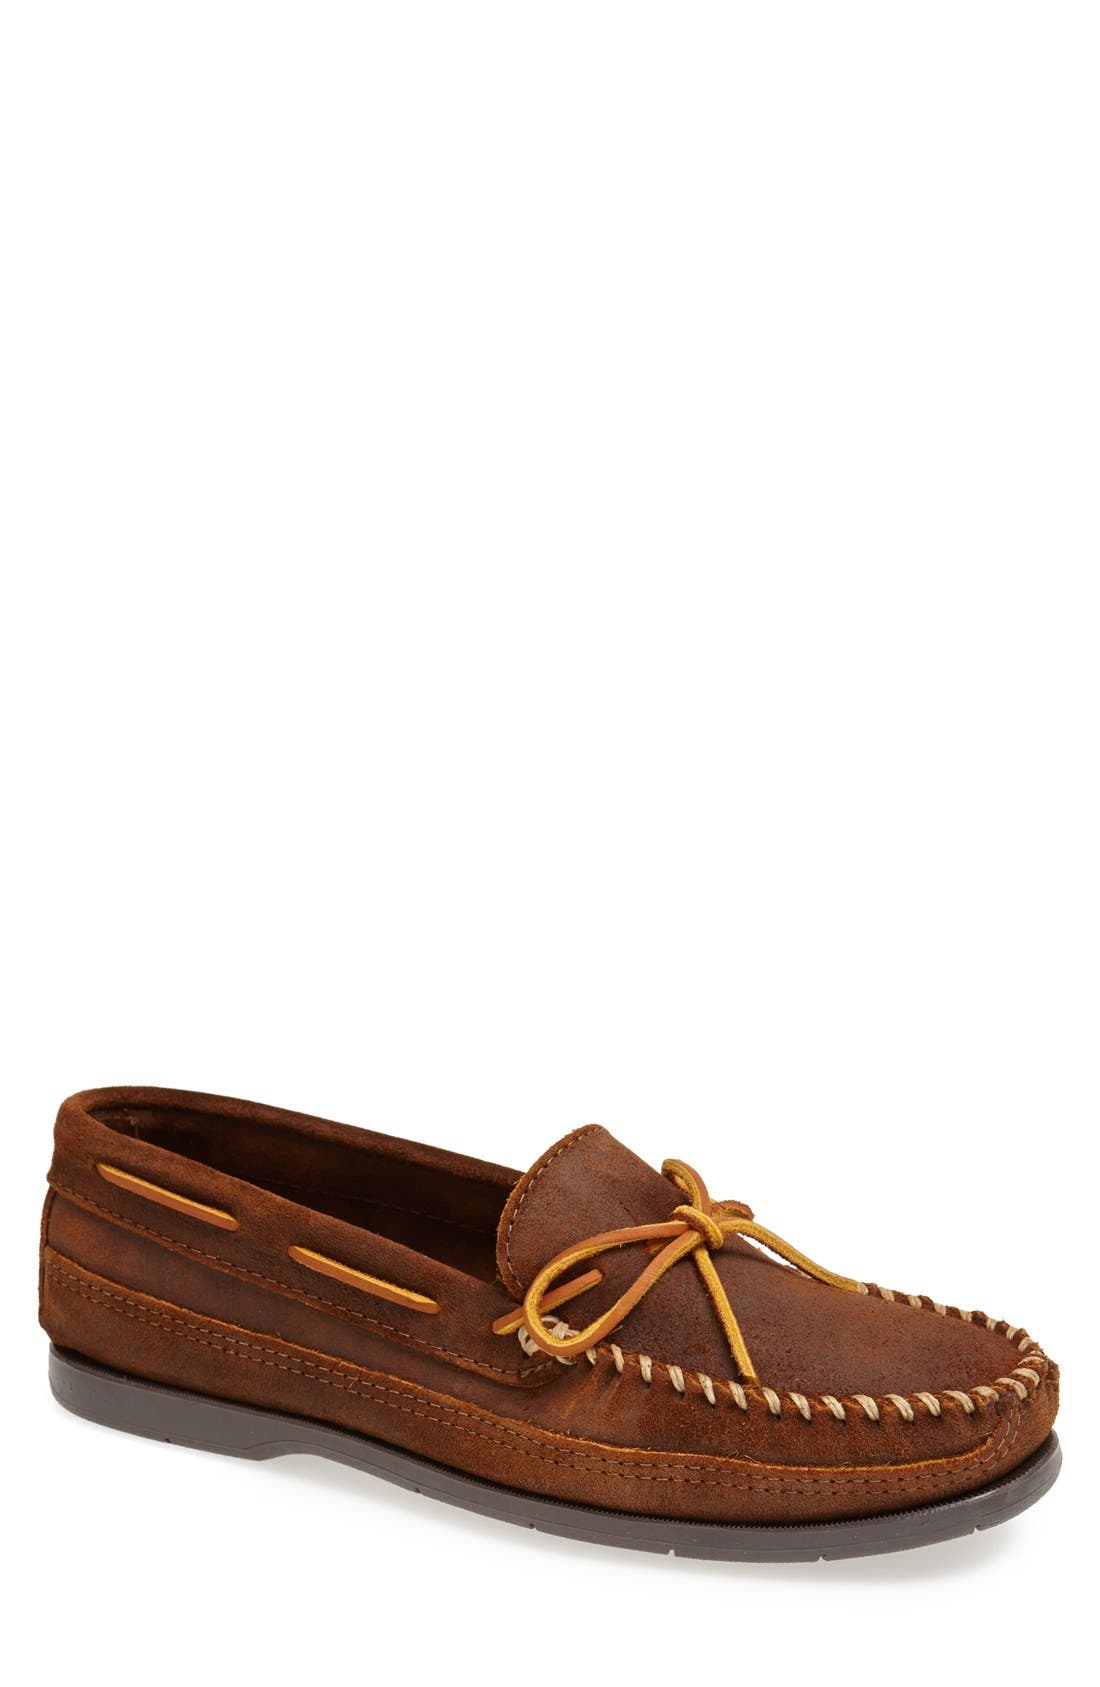 Leather Moccasin,                             Main thumbnail 1, color,                             Brown Ruff